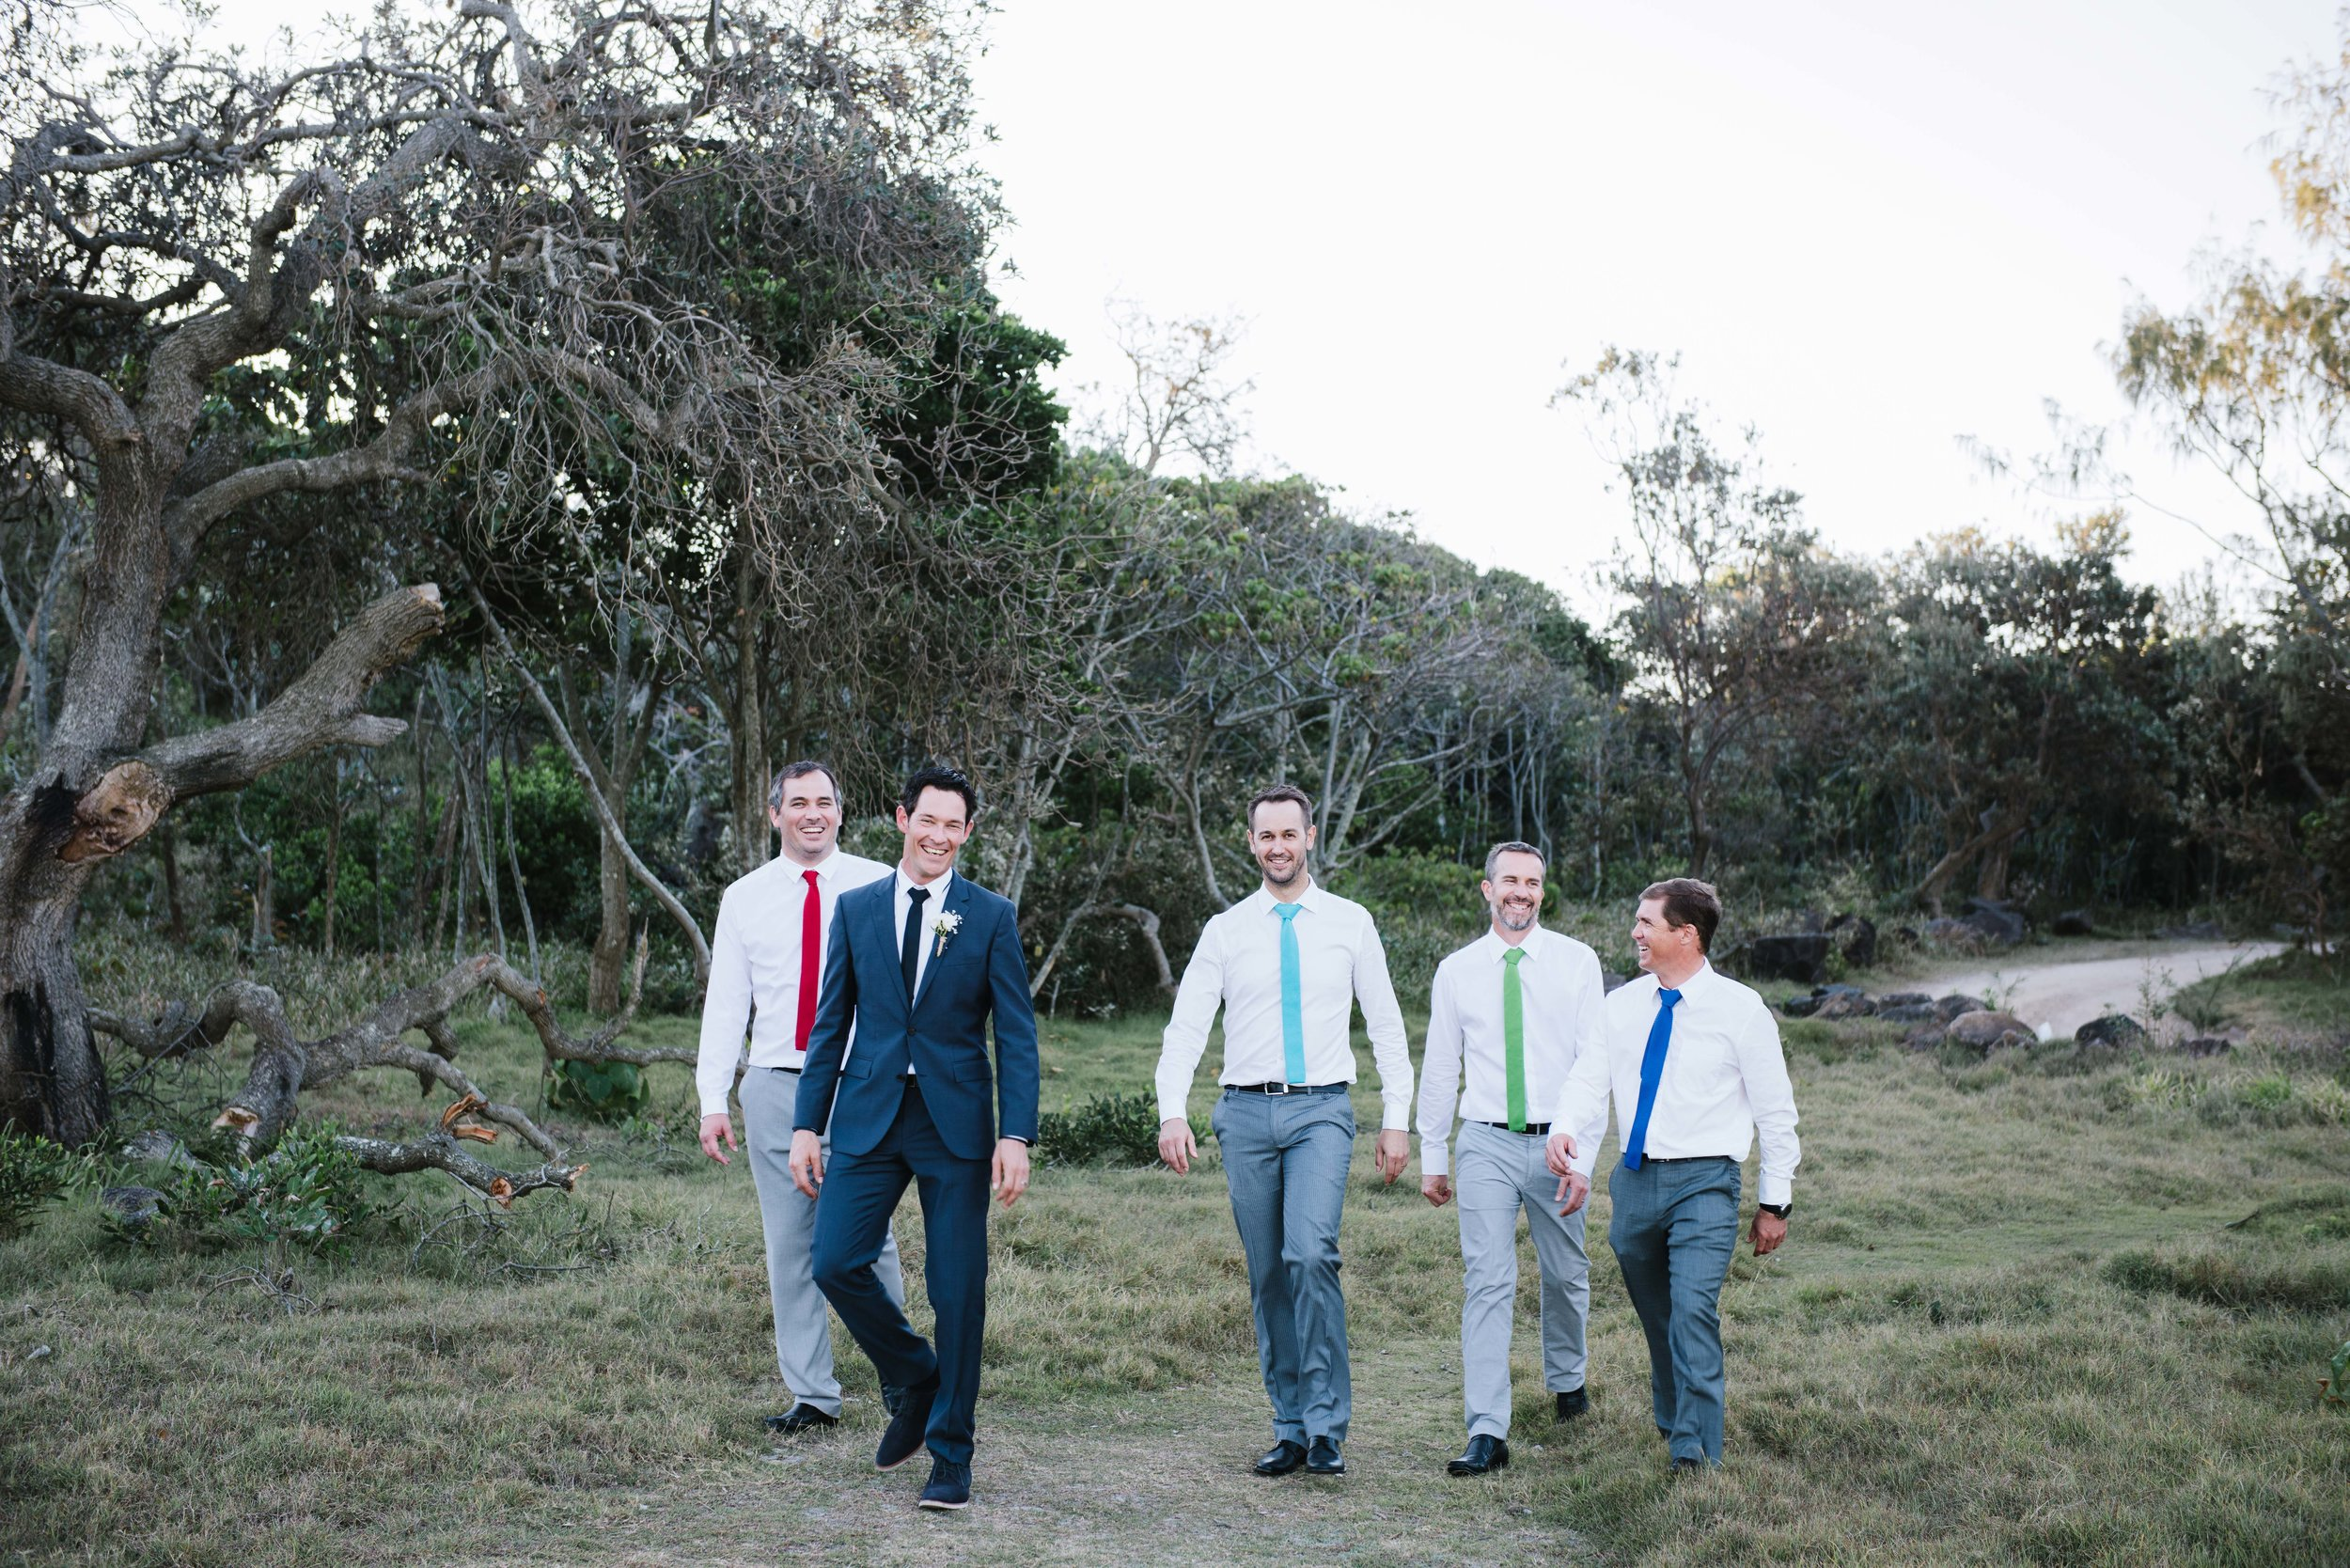 Am and Sam- skyla sage photography weddings, families, byron bay,tweed coast,kingscliff,cabarita,gold coast-446.jpg